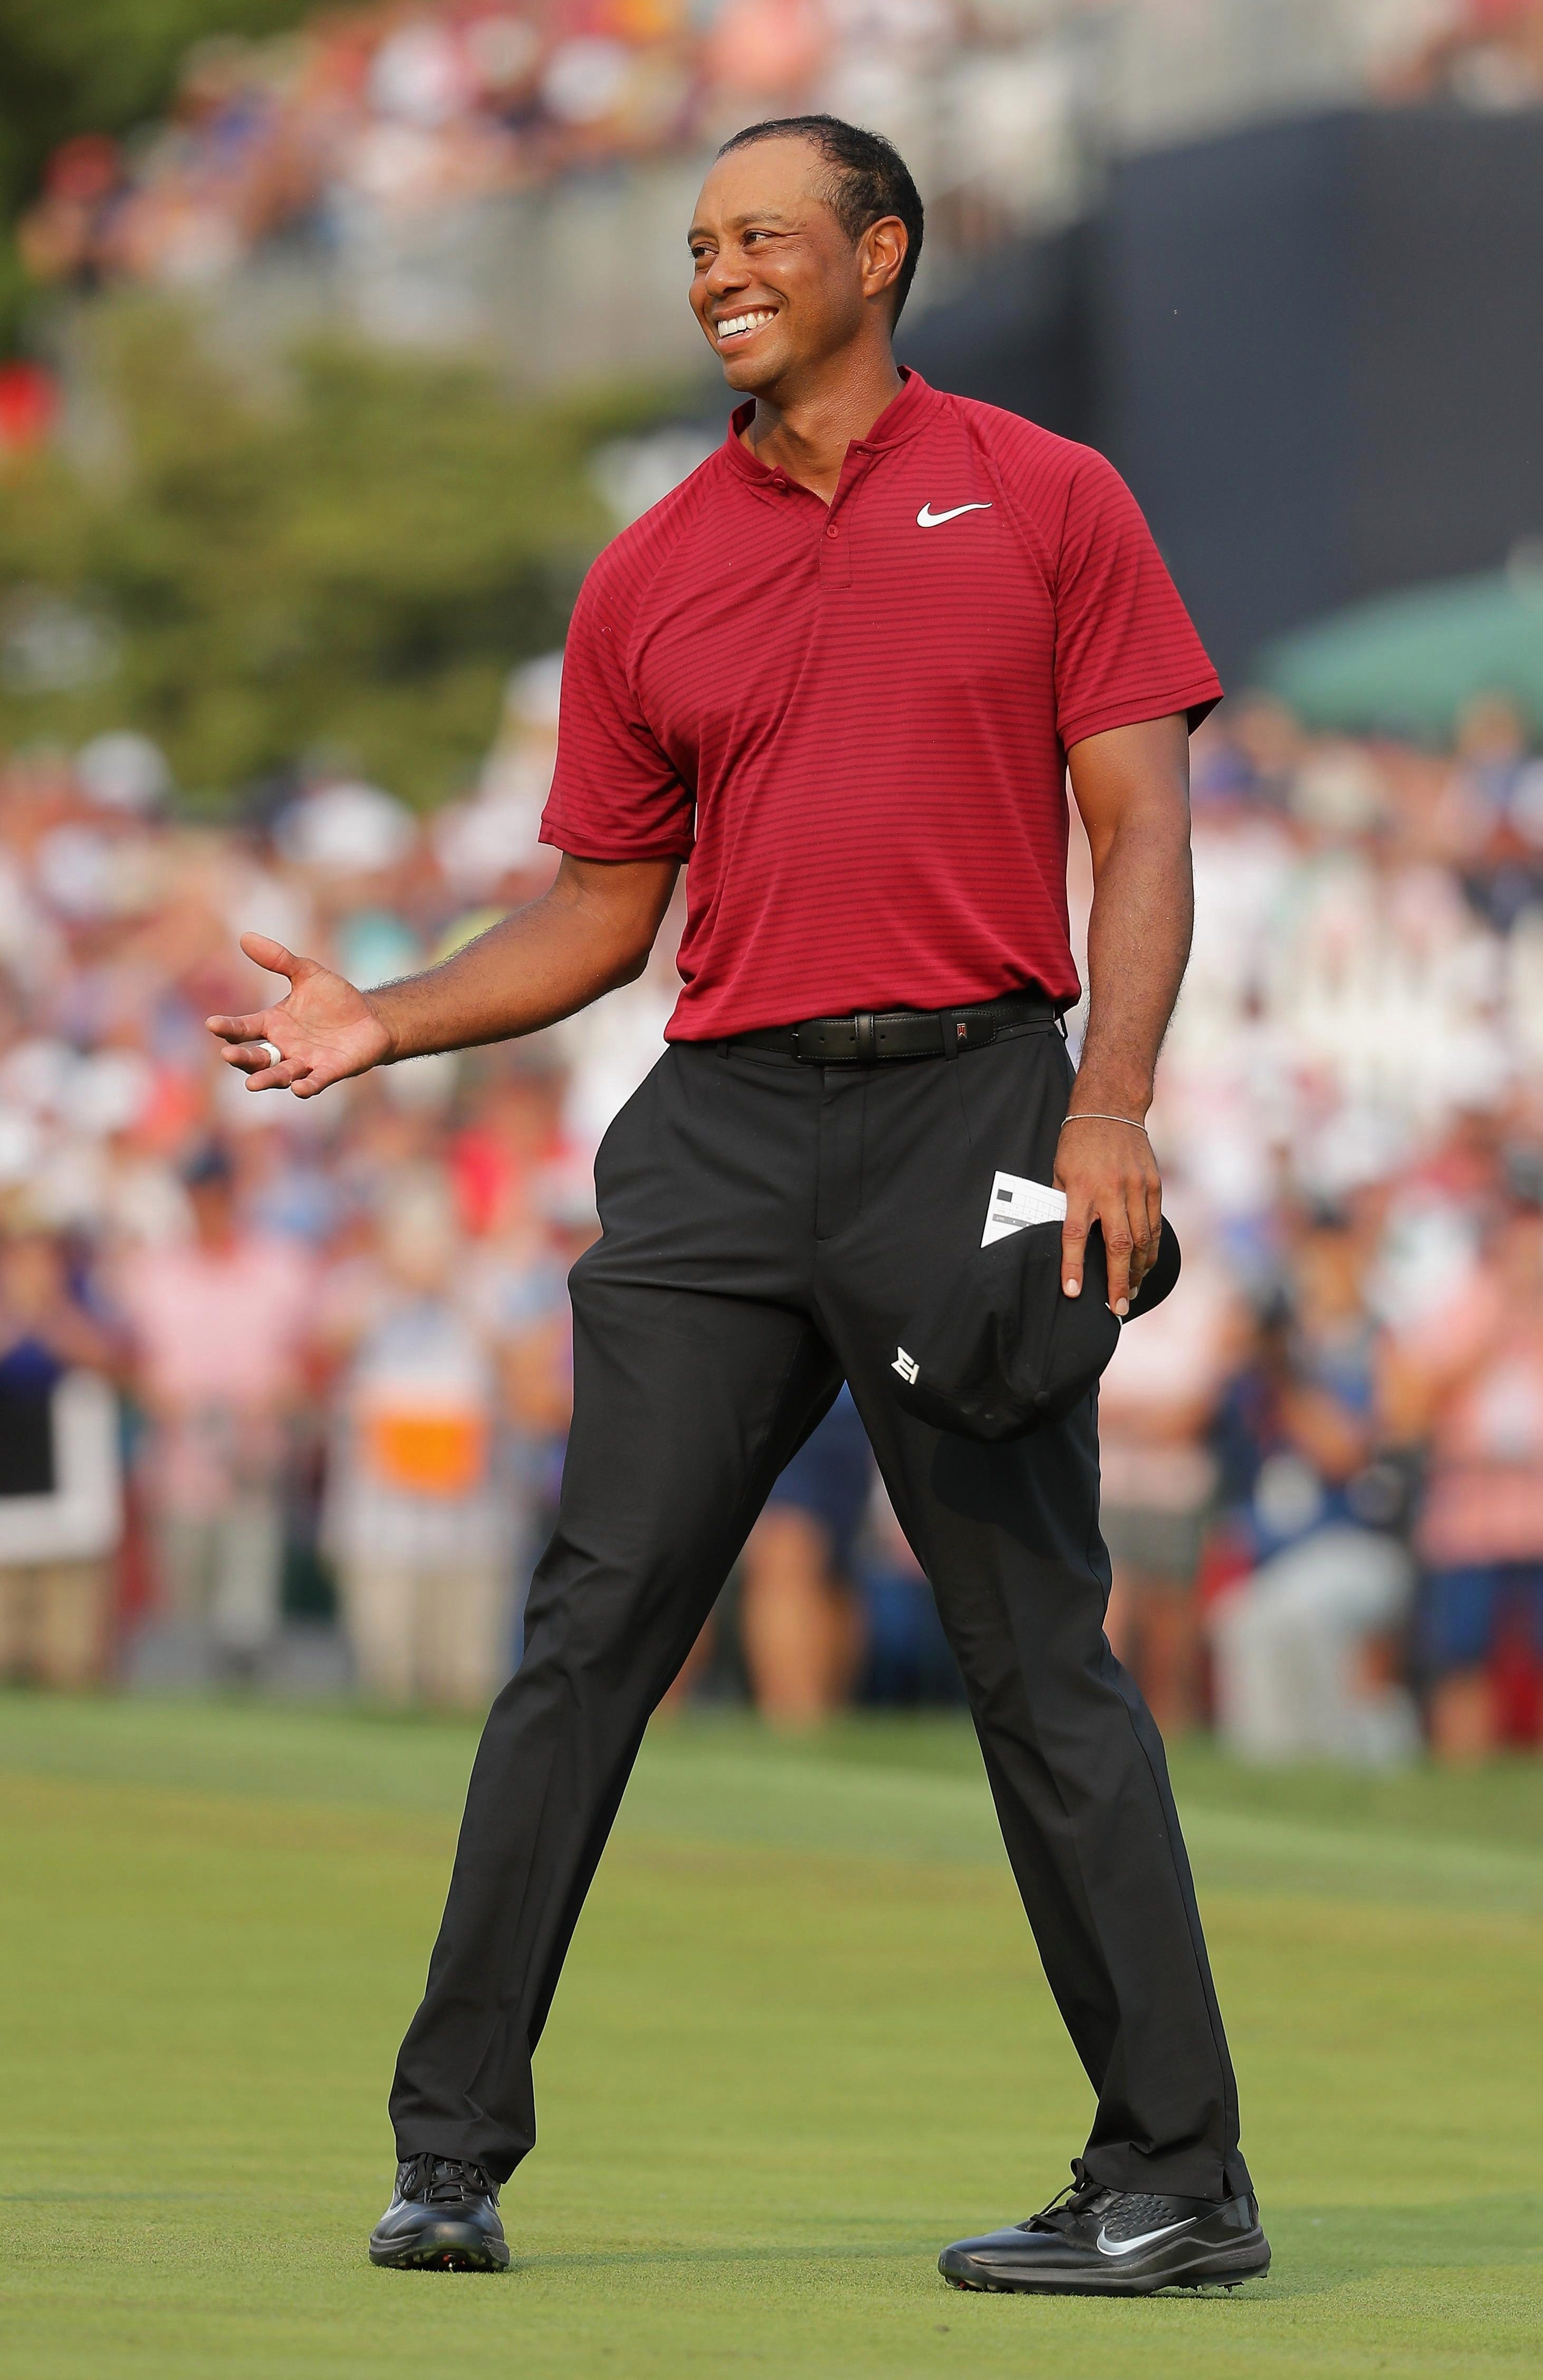 Superstar Tiger Woods has really turned up the gas on his comeback